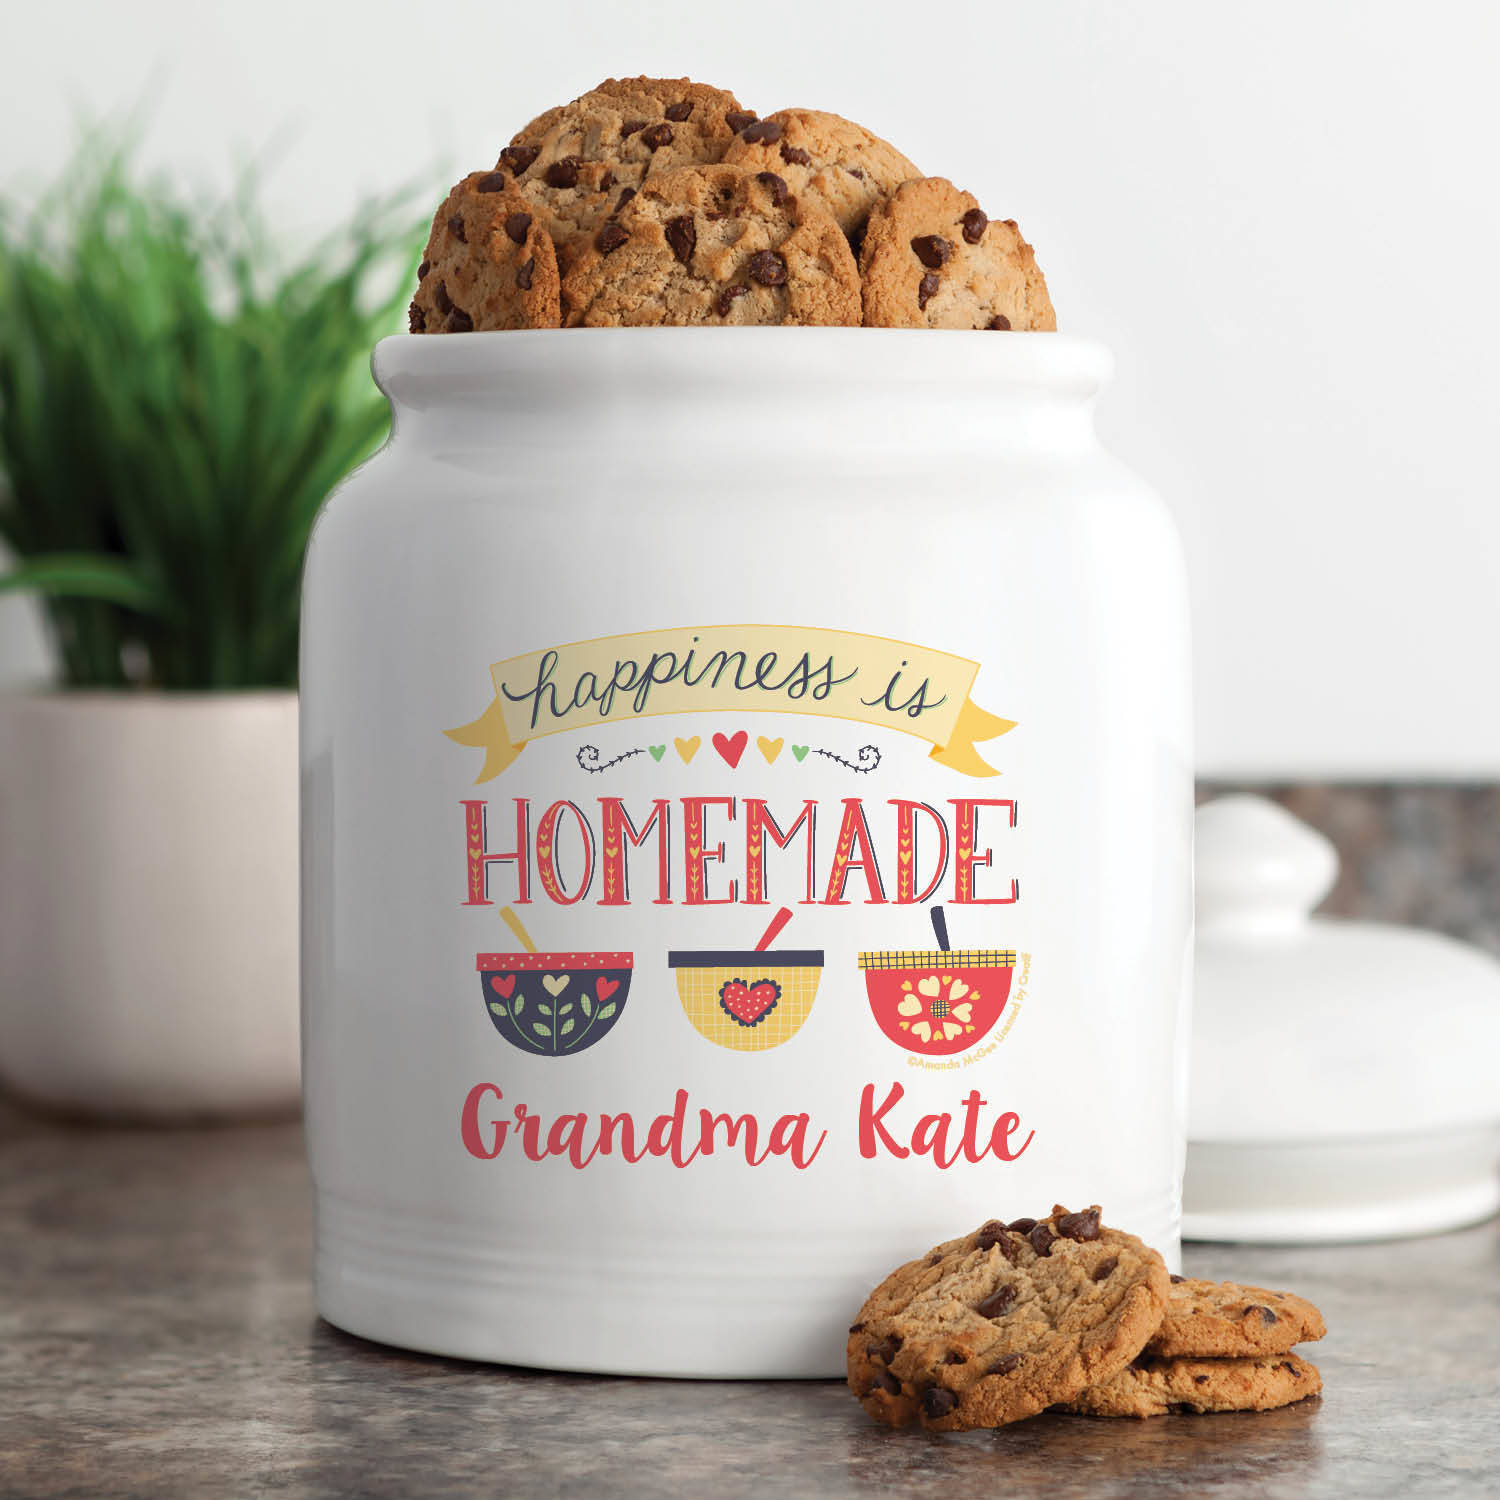 Amanda McGee 'Happiness is Homemade' Personalized Cookie Jar by Generic